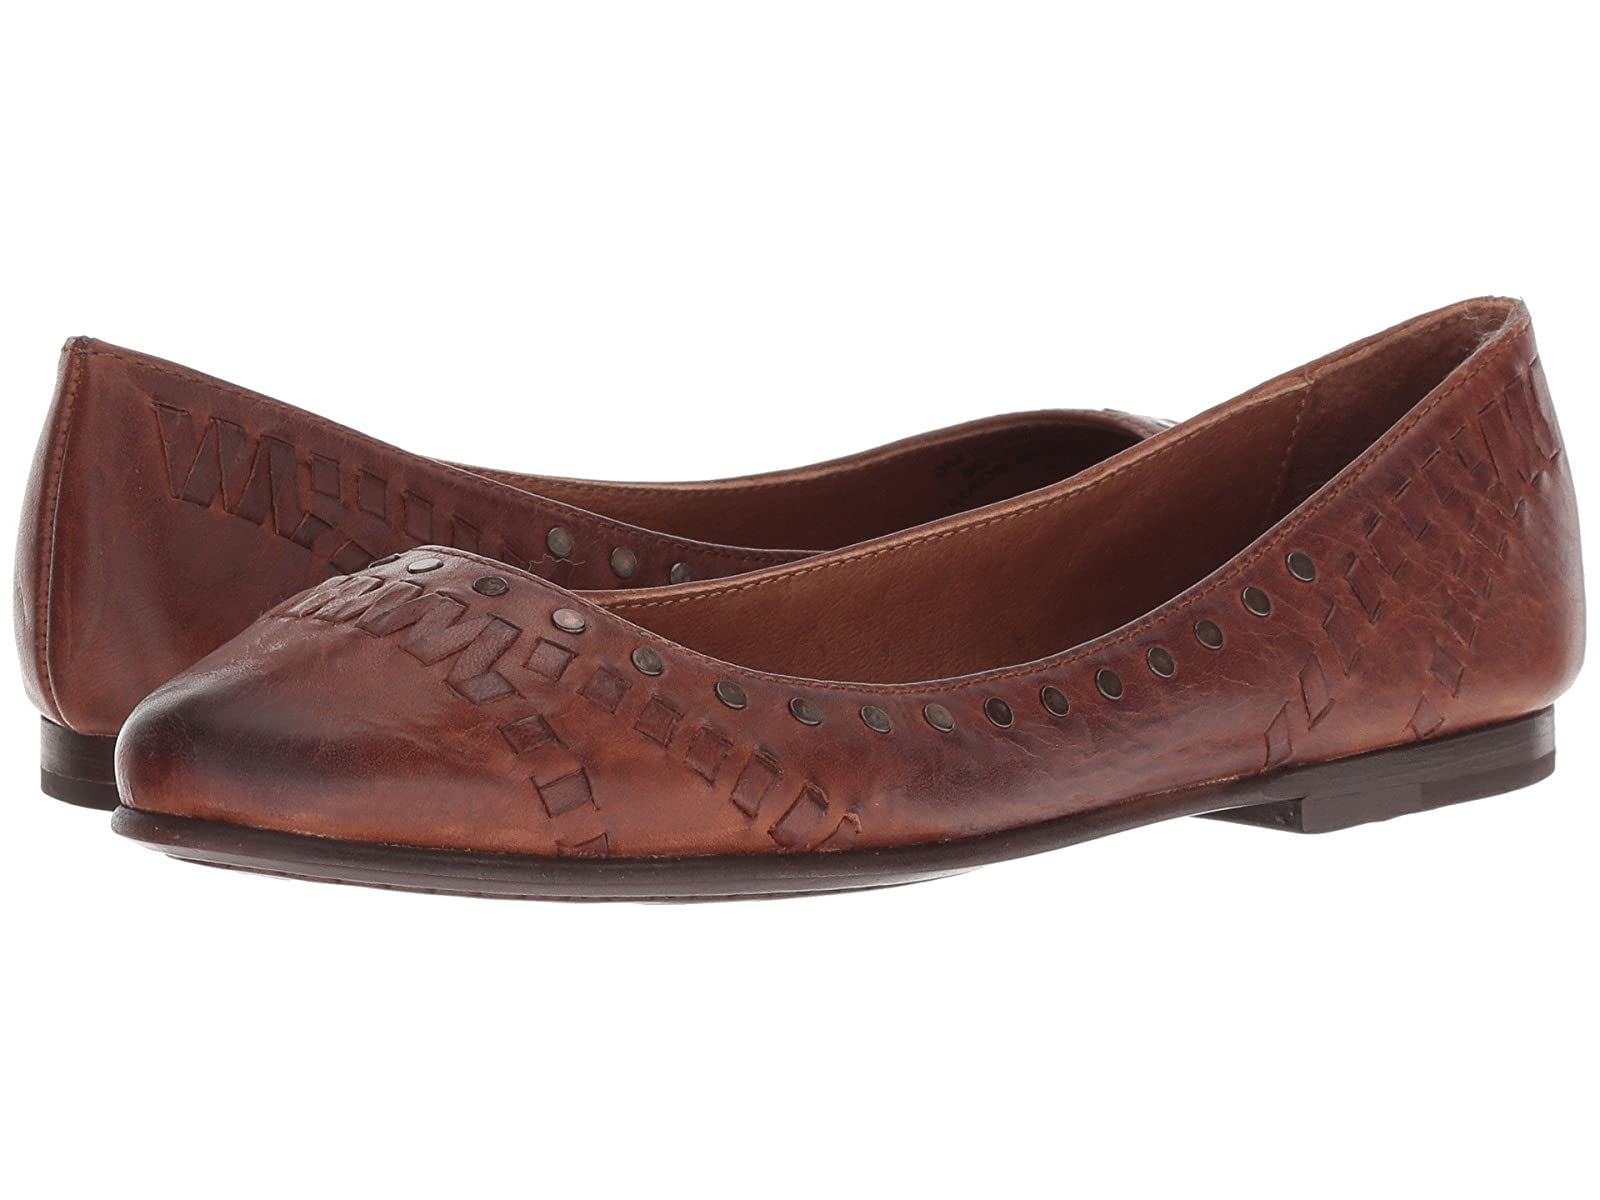 Frye Carson Whip StudAtmospheric grades have affordable shoes